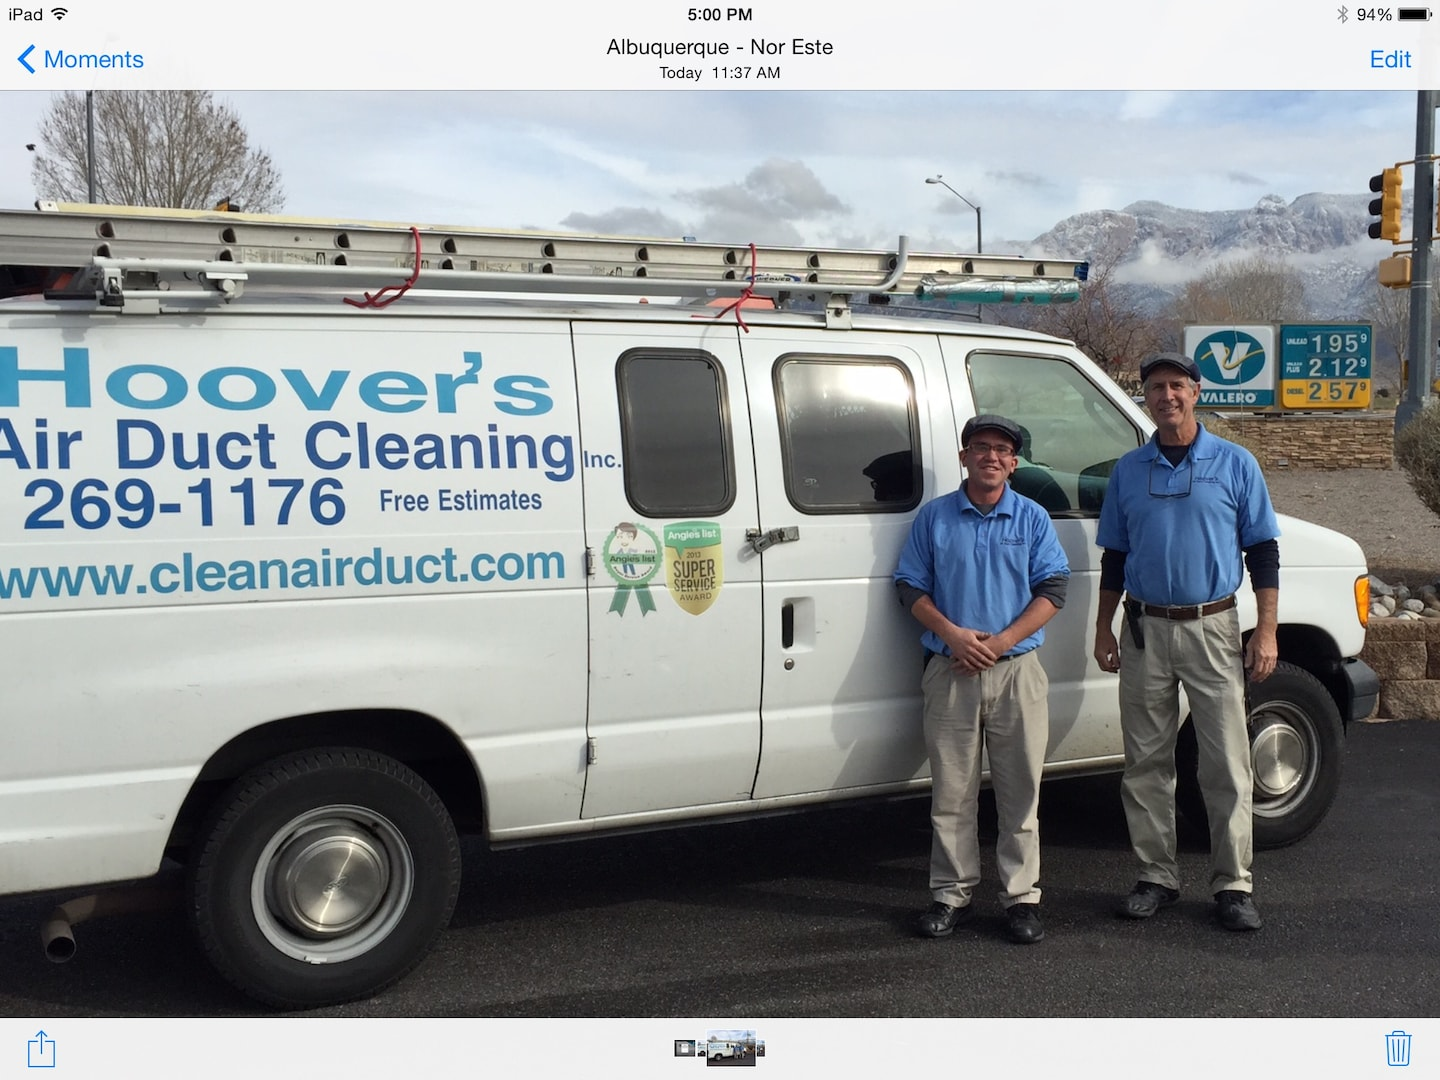 HOOVER'S AIR DUCT CLEANING